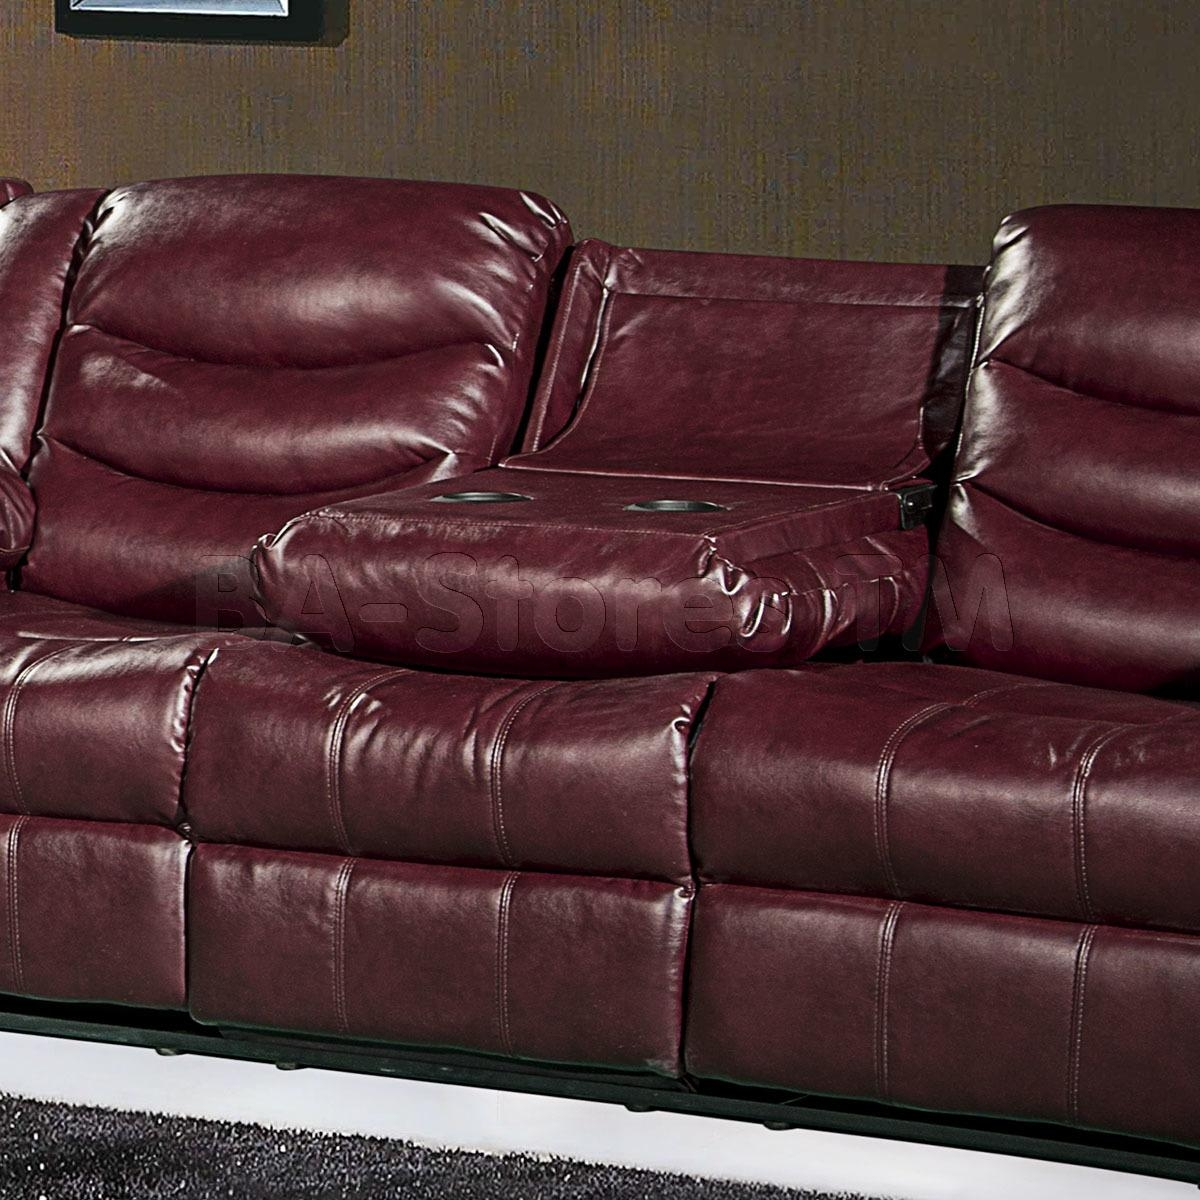 Meridian Furniture 644 Sectional Sofa | Burgundy | Sectional Sofas Within Burgundy Sectional Sofas (Image 15 of 20)